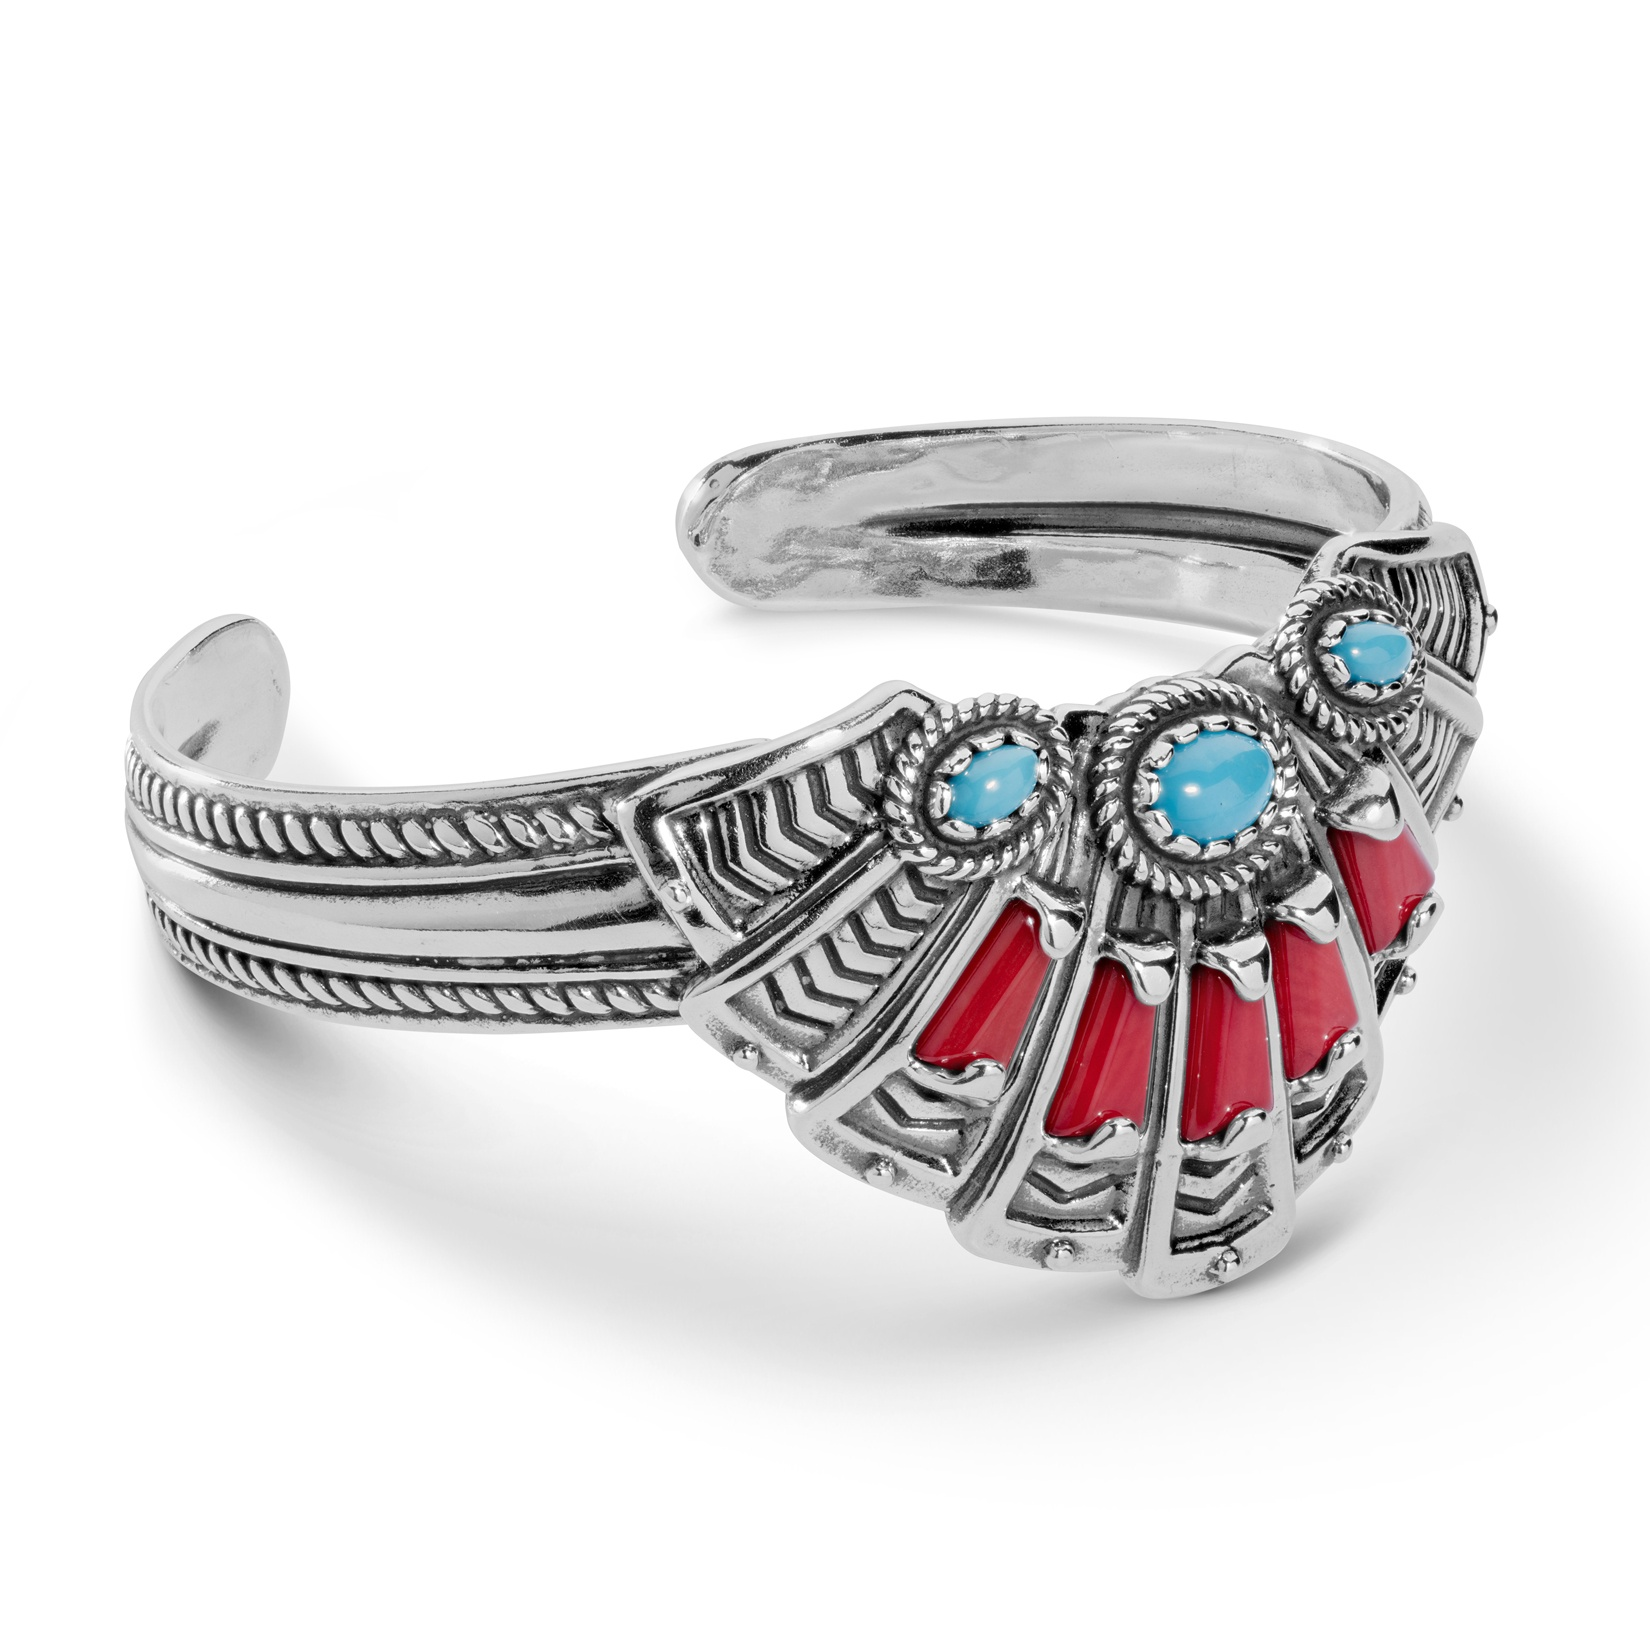 Classics Sterling Silver, Red Coral, and Turquoise Cuff Bracelet